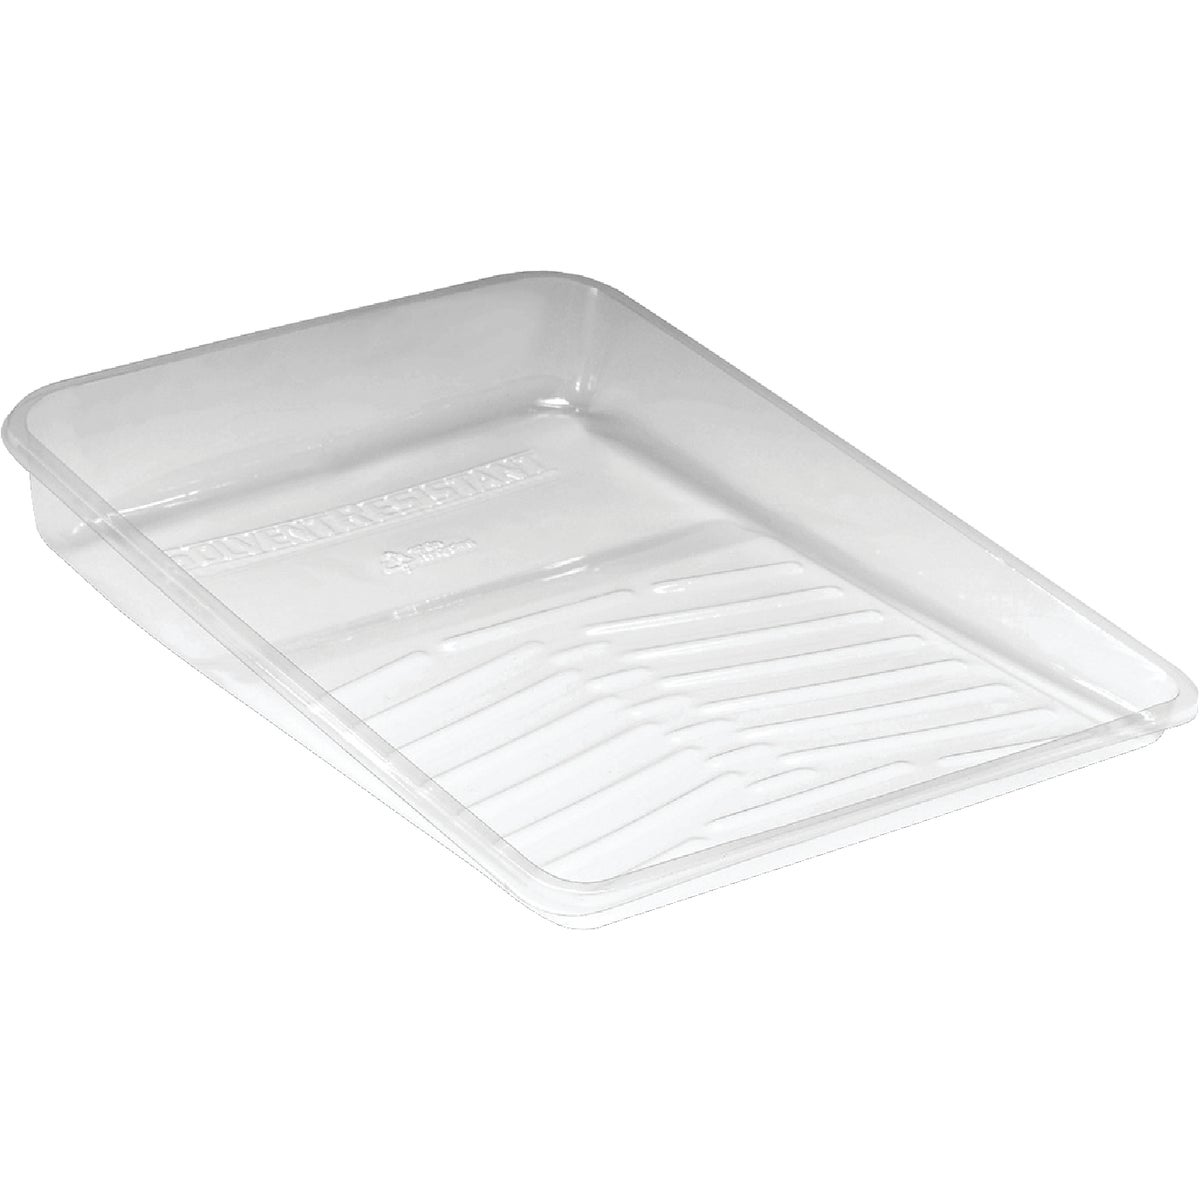 ECO FRIENDLY TRAY LINER - BR407-11 by Wooster Brush Co